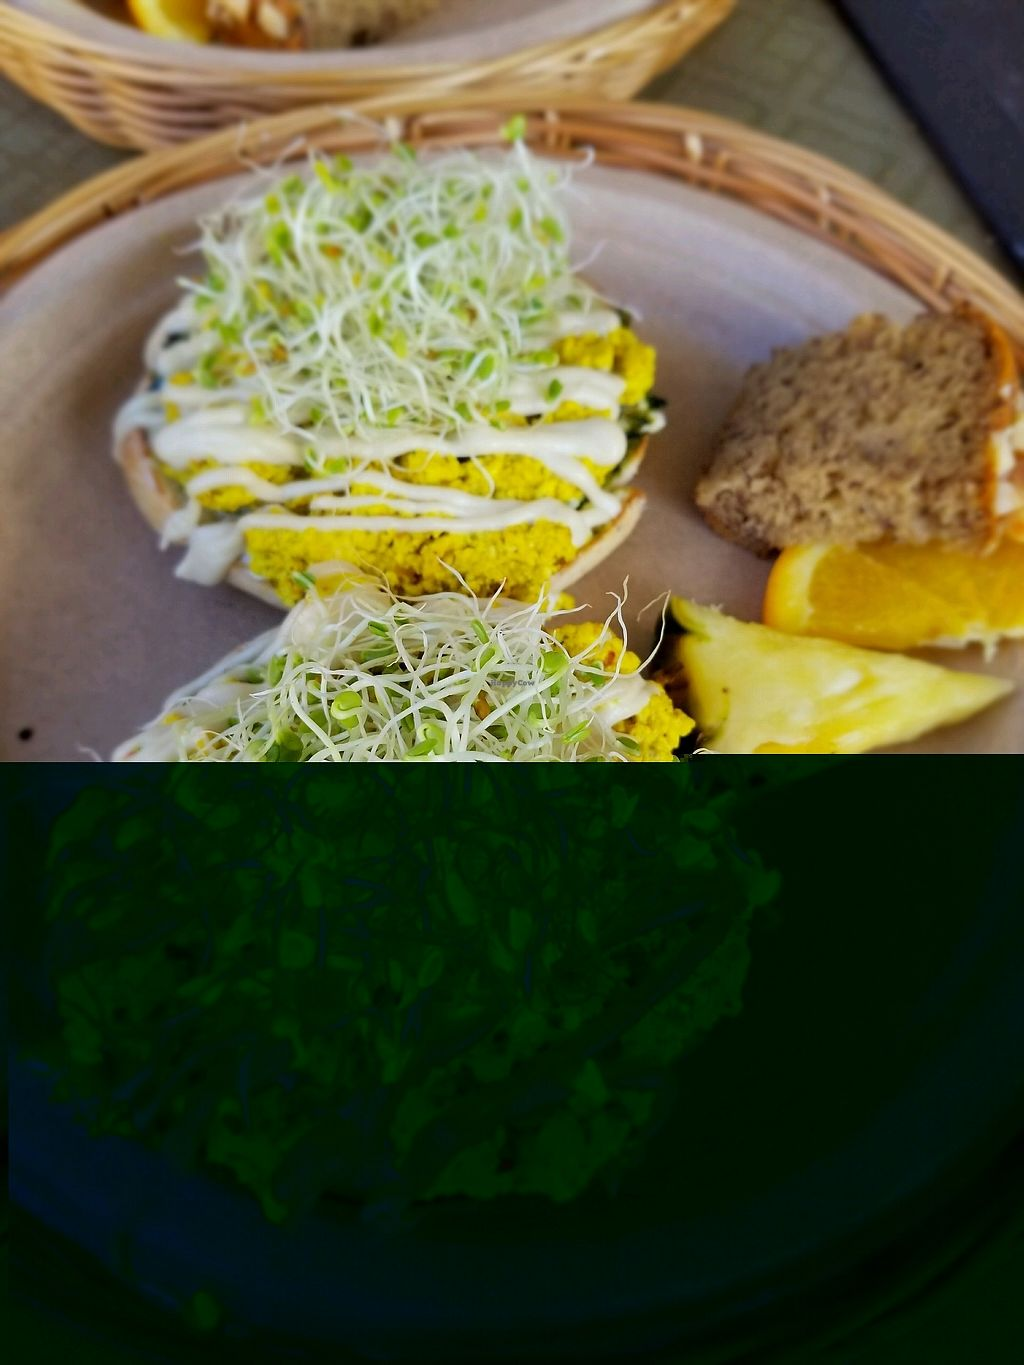 """Photo of Evolution Bakery and Cafe  by <a href=""""/members/profile/Vegan.Shay"""">Vegan.Shay</a> <br/>Ghandi bagel. just amazing <br/> January 20, 2018  - <a href='/contact/abuse/image/43352/348675'>Report</a>"""